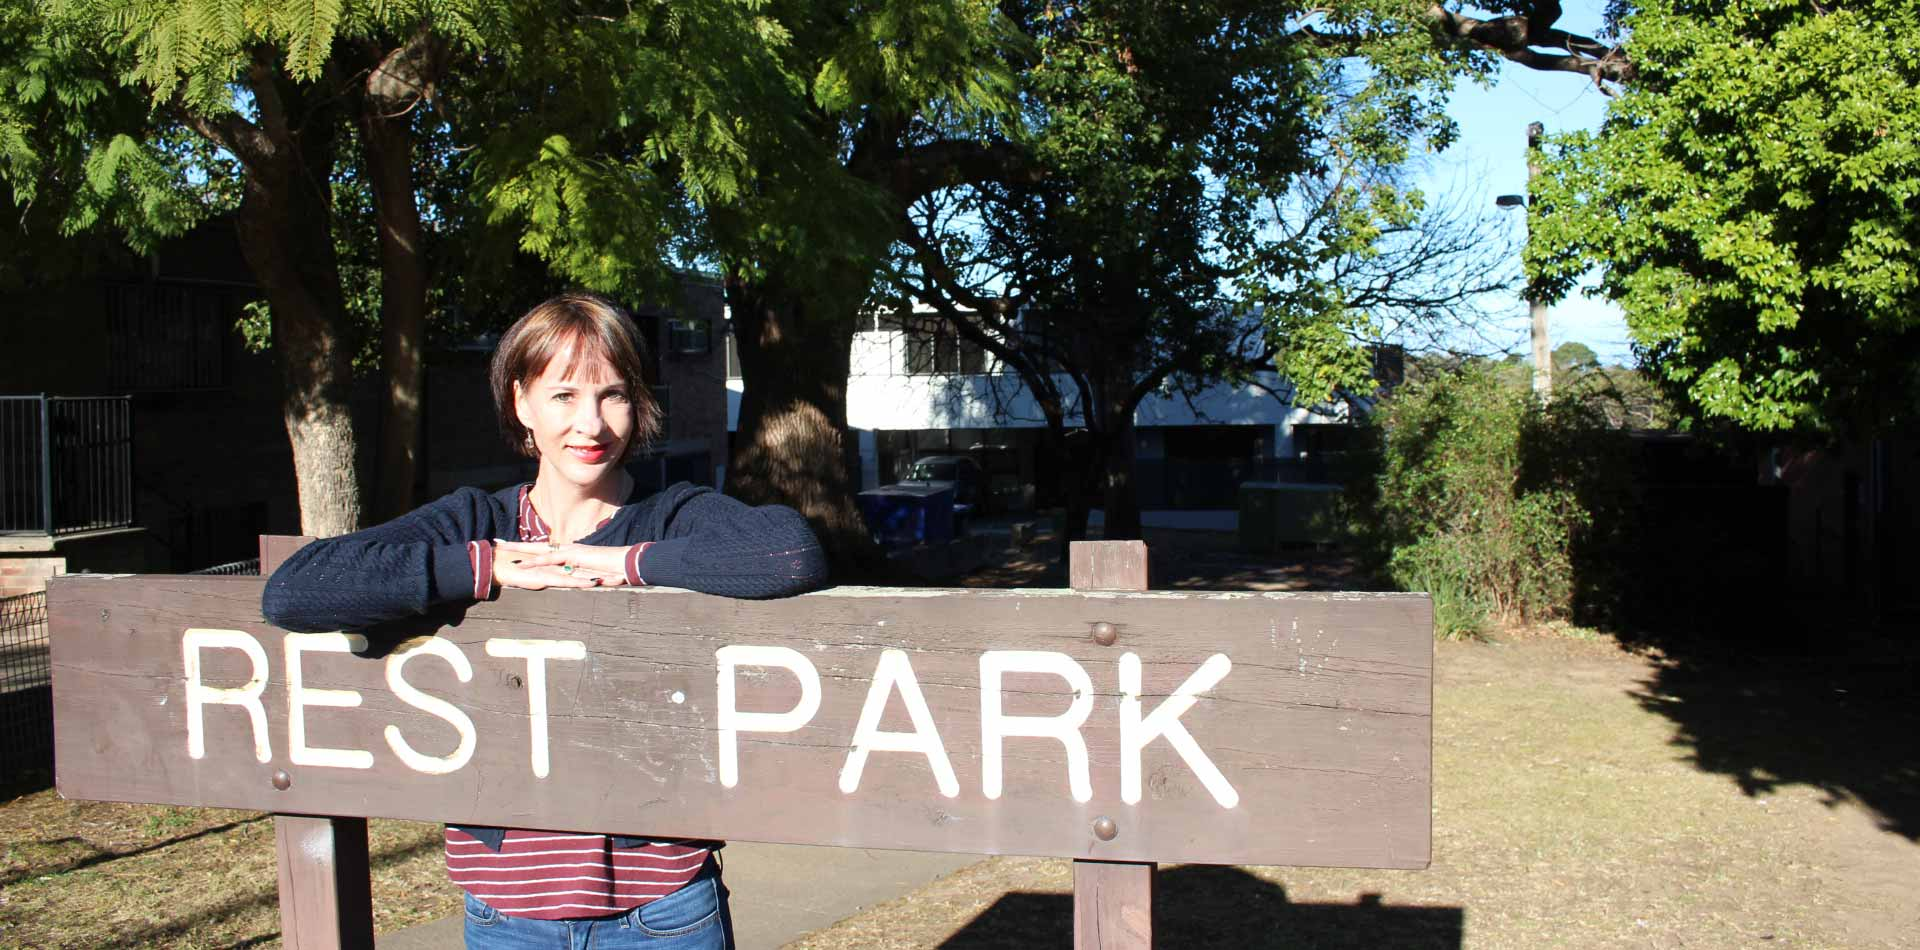 Ward 2 Councillor, Shae Foenander at Rest Park Springwood, is keen for parks and the public domain of Springwood town centre to reflect both the town's history and its future